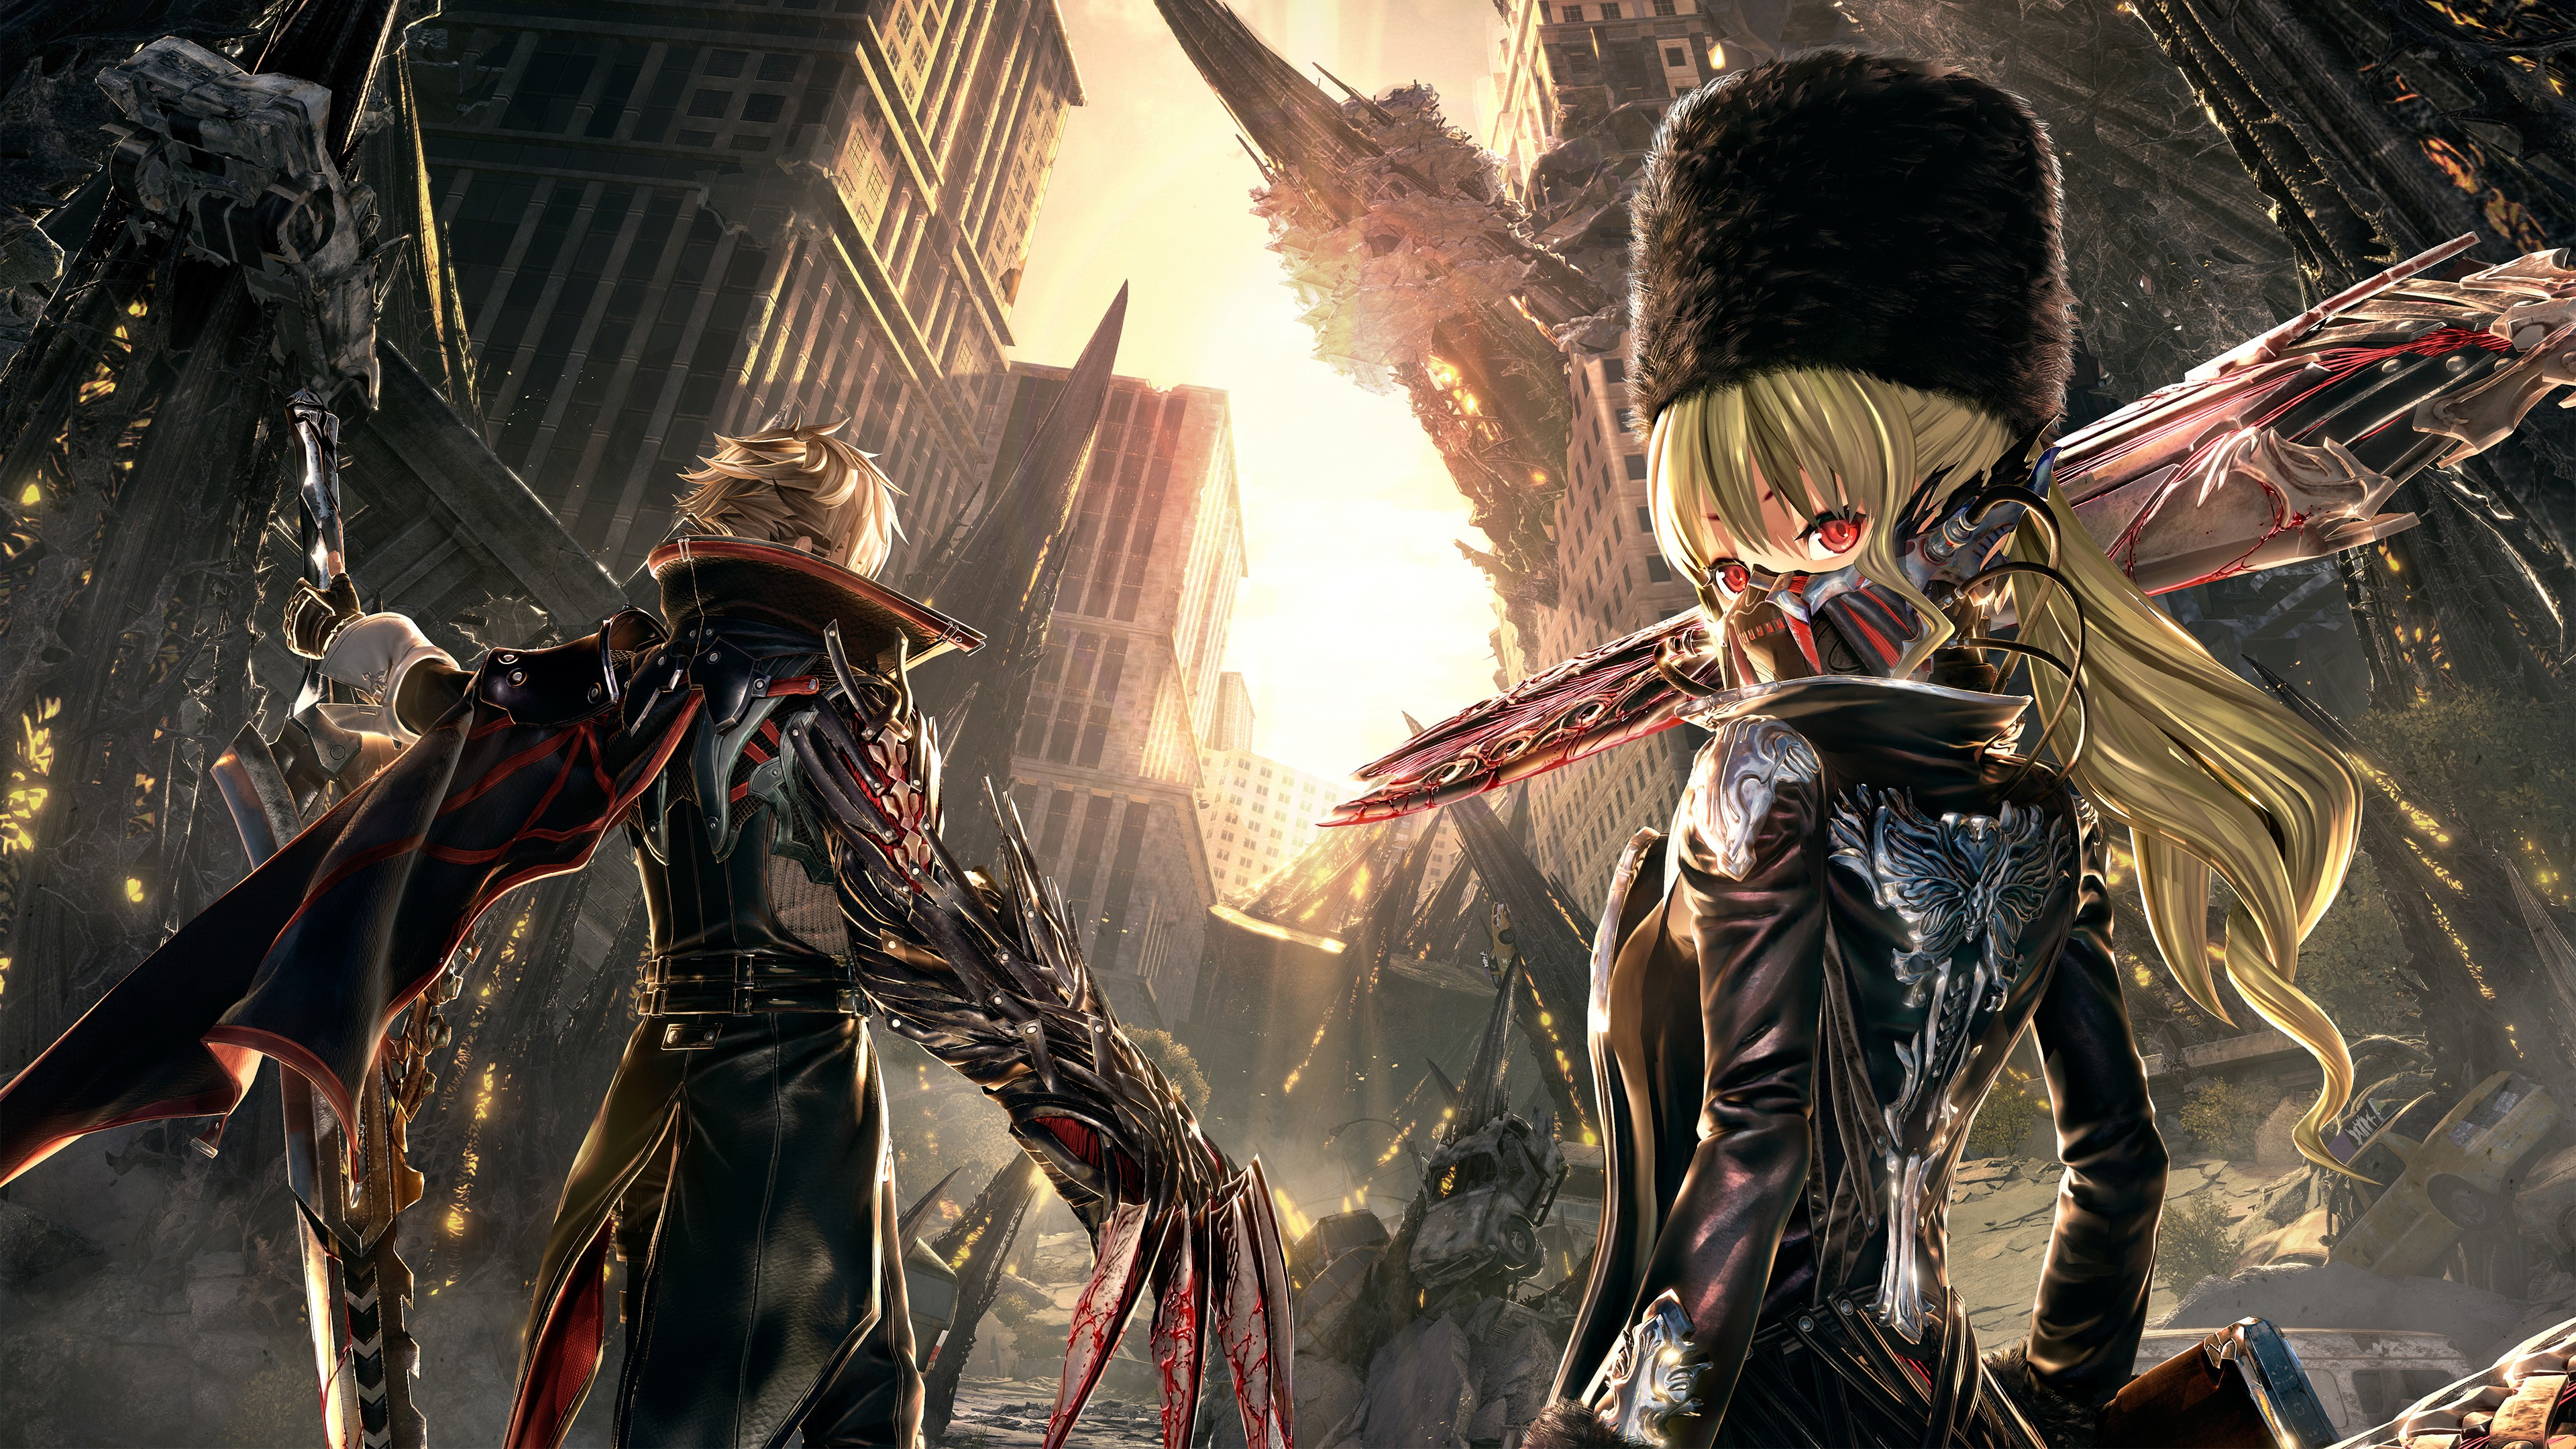 10 Code Vein Hd Wallpapers Background Images Wallpaper Abyss